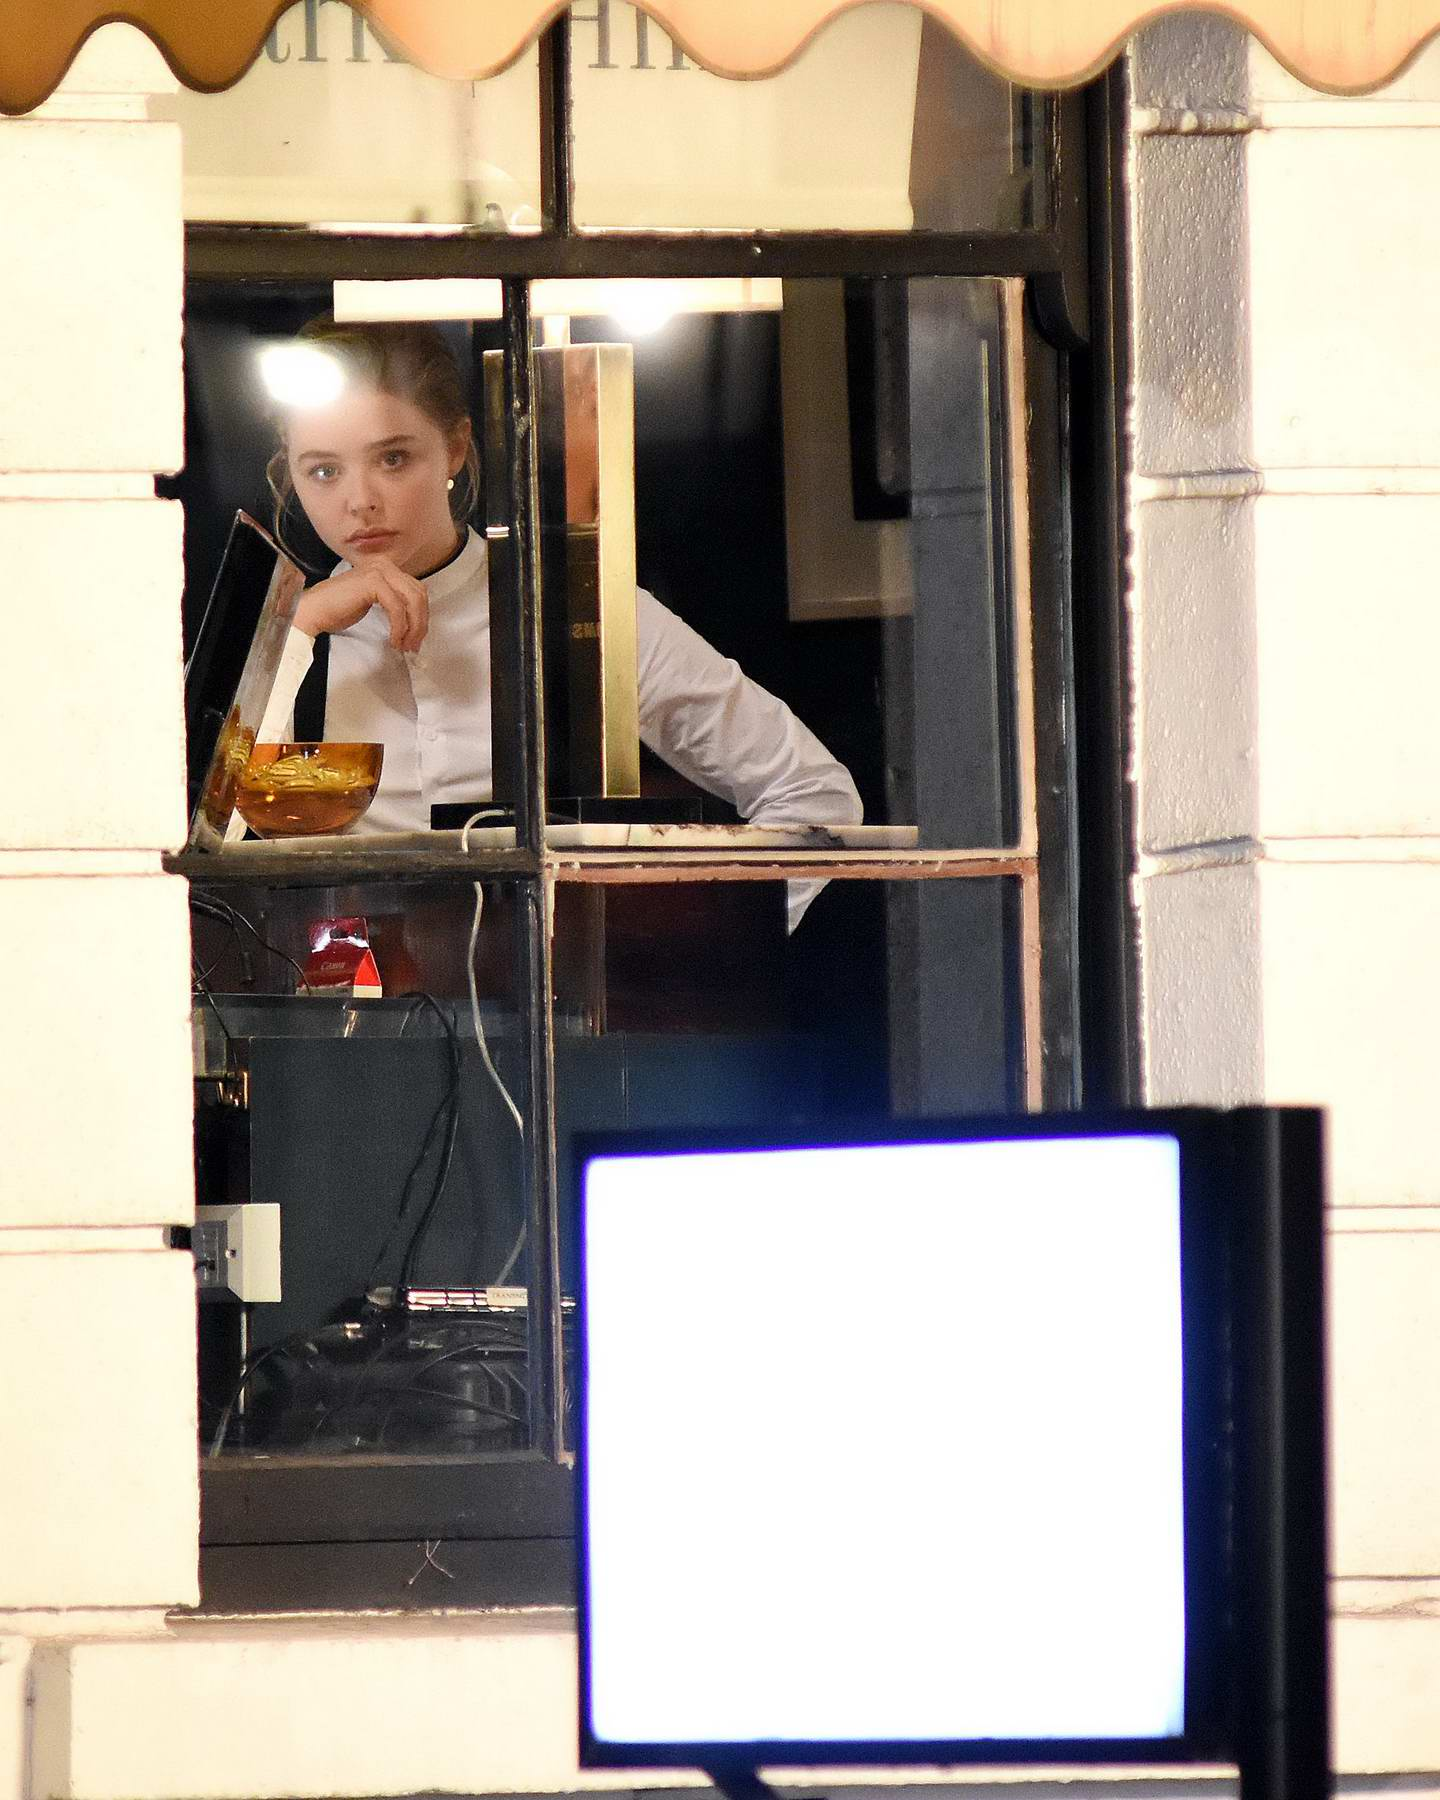 Chloe Grace Moretz films New York scenes on Dawson Street on the Neil Jordan directed movie The Widow in Dublin, Ireland